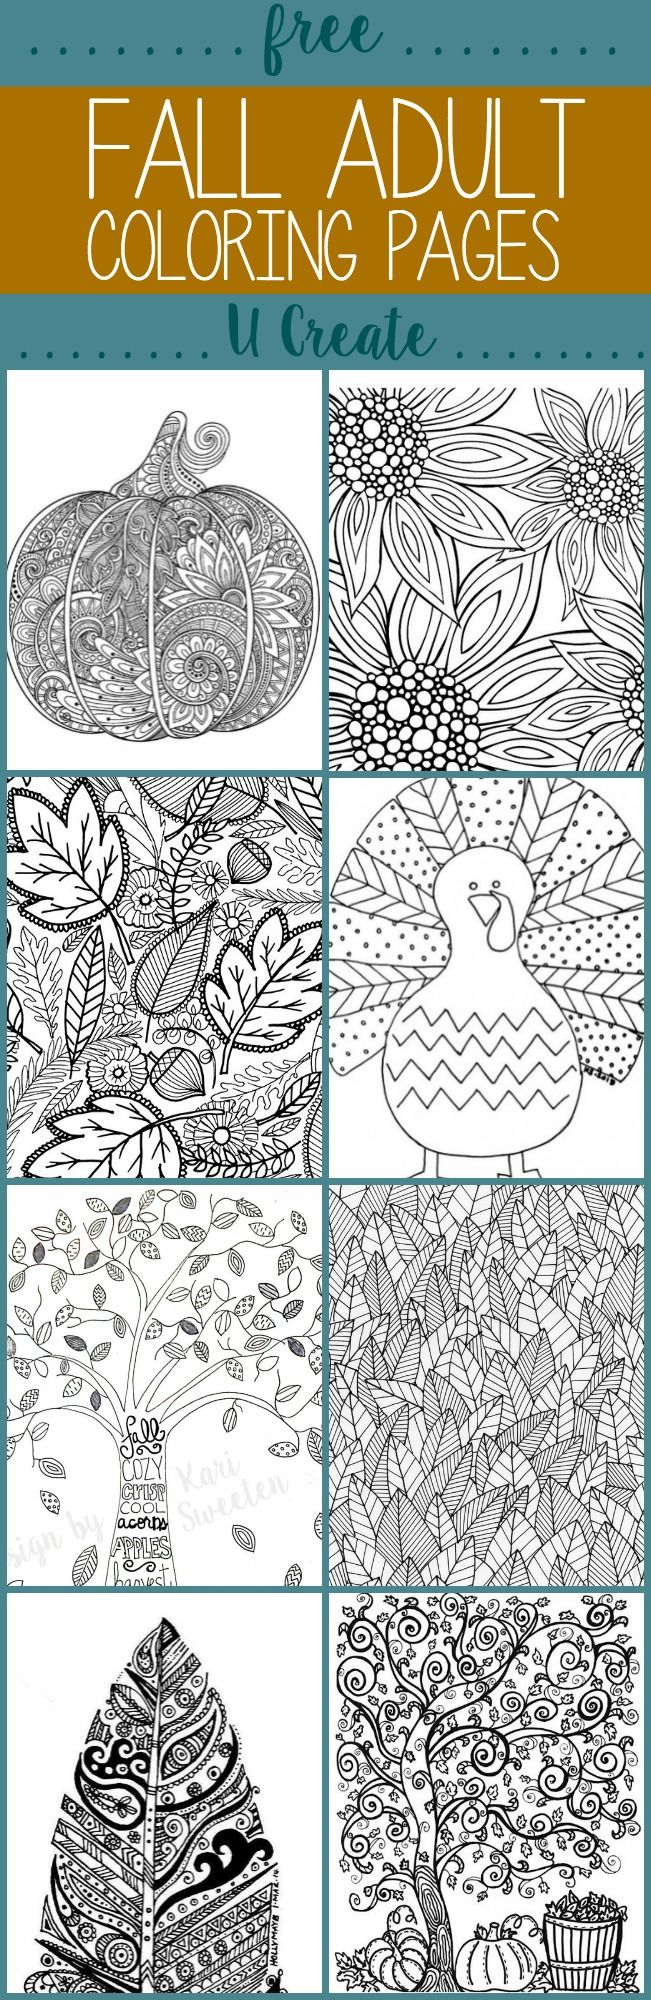 Printable adult thanksgiving coloring sheet - Free Fall Adult Coloring Pages